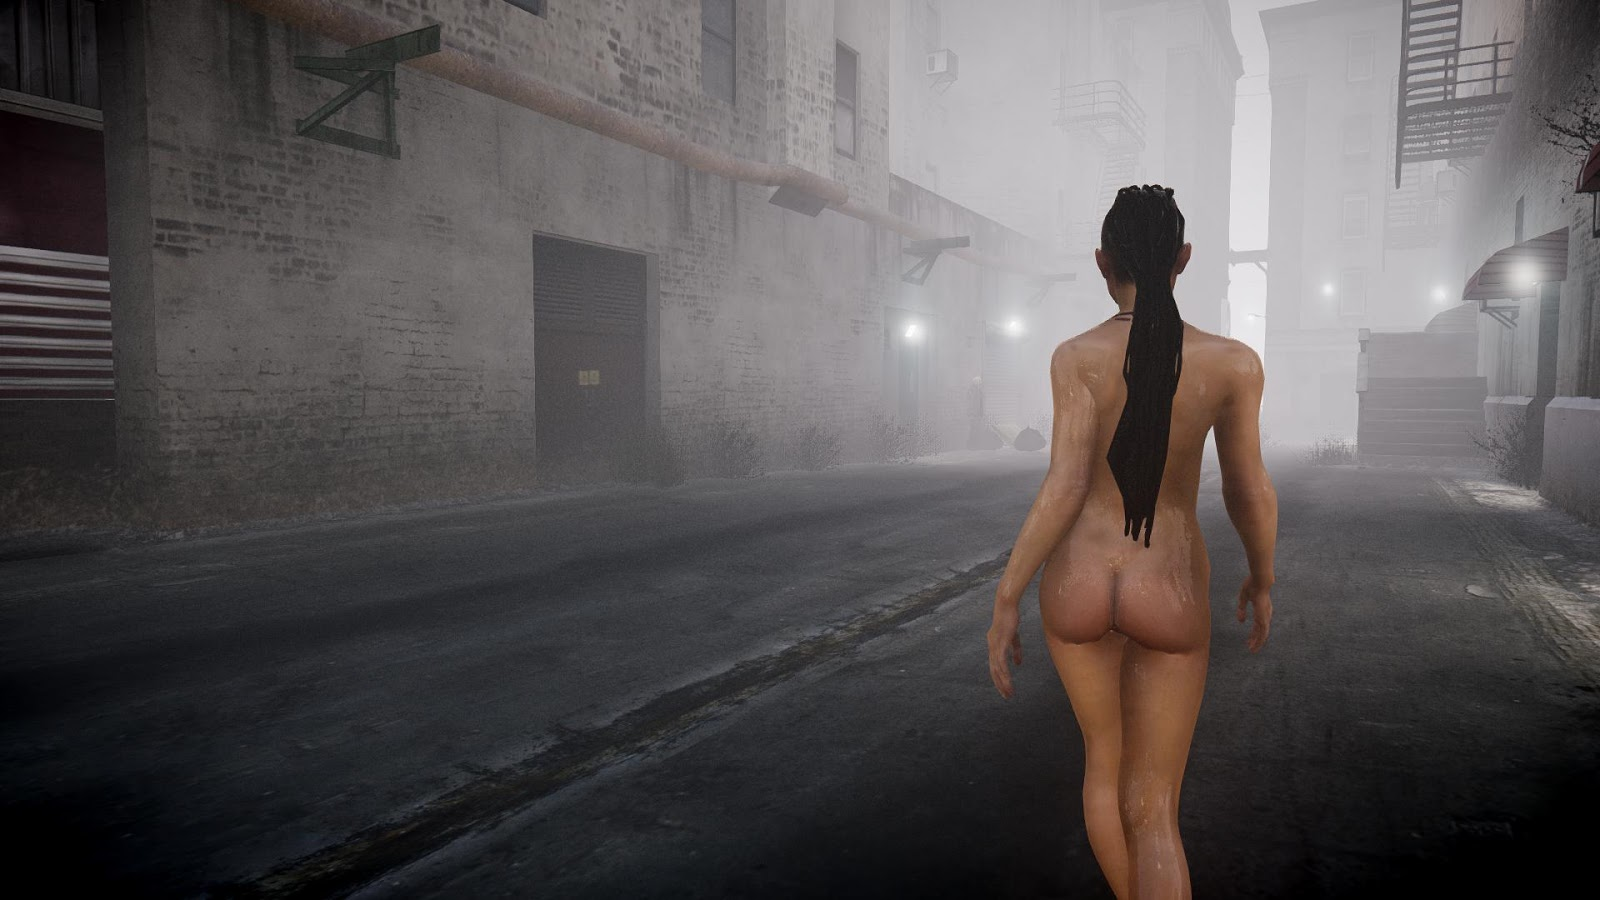 Naked nude gta 5 girl wallpaper xxx picture